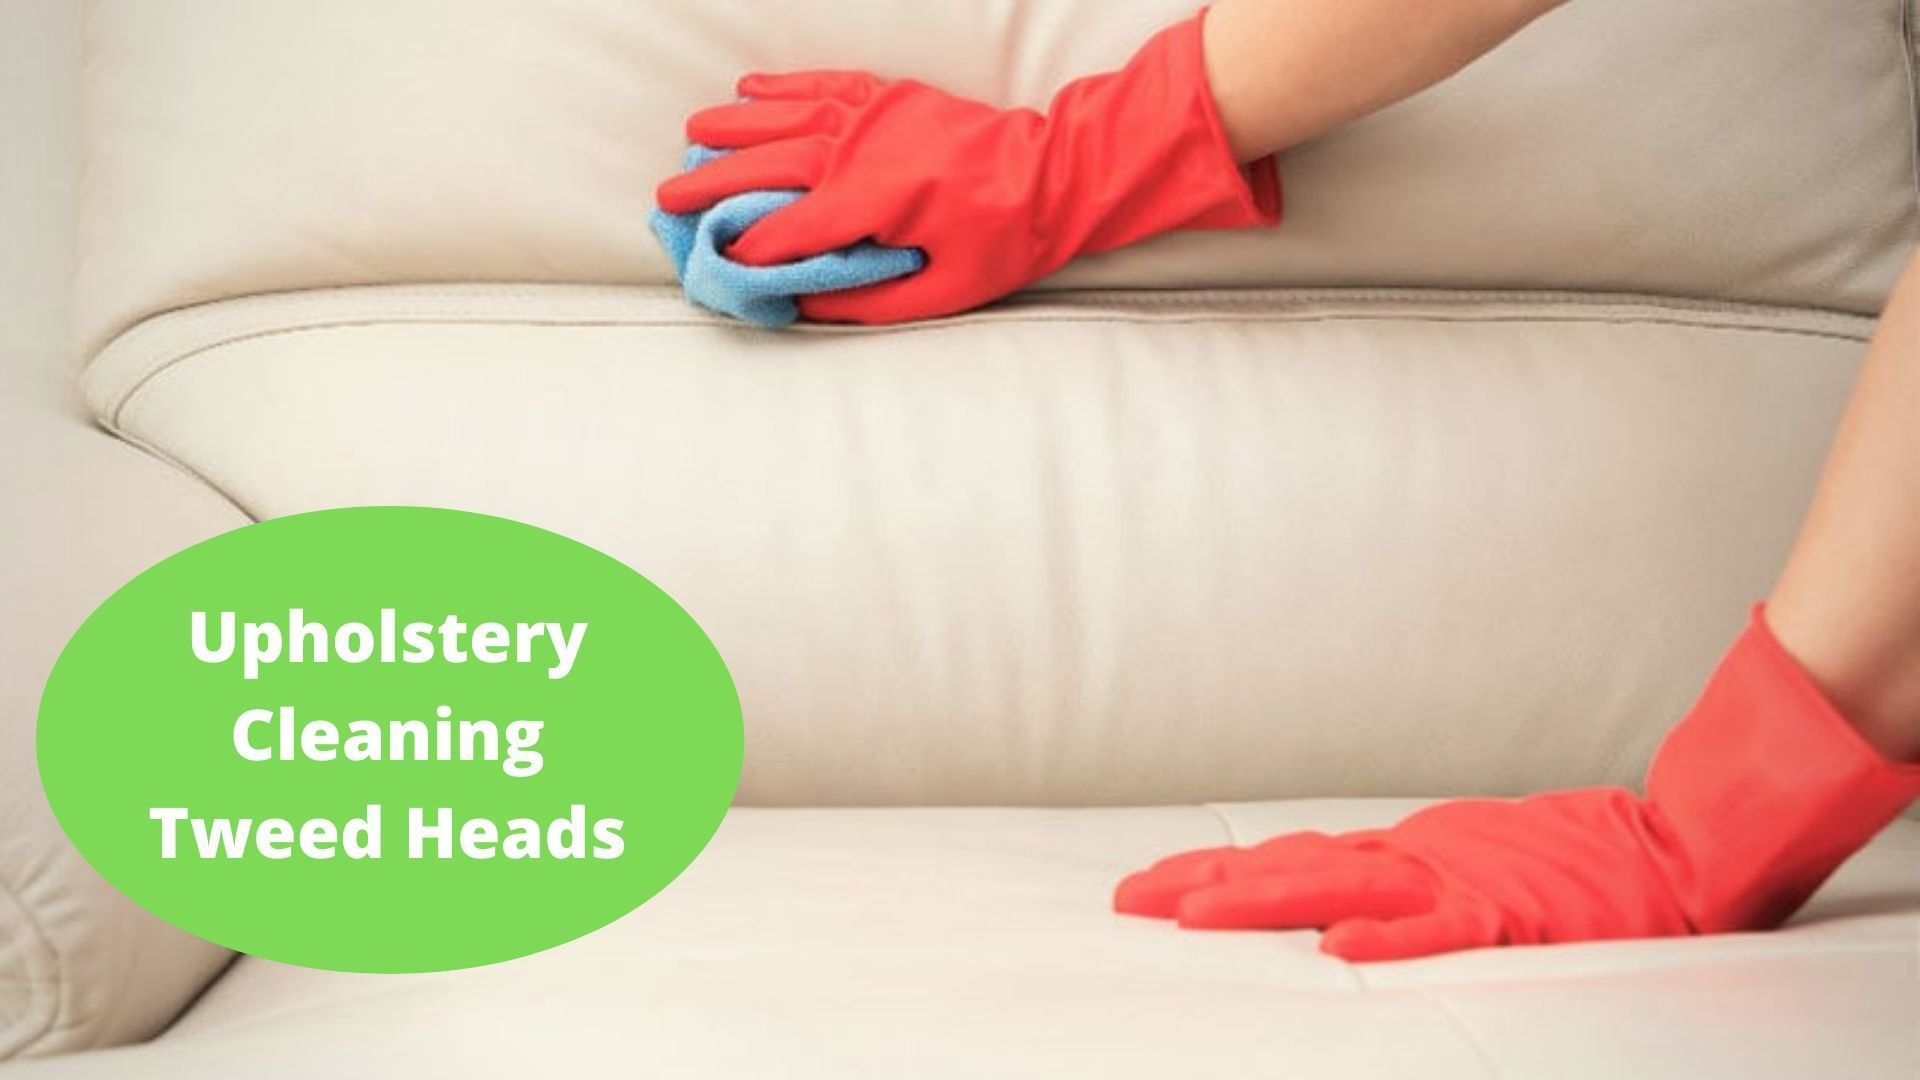 upholstery cleaning tweed heads